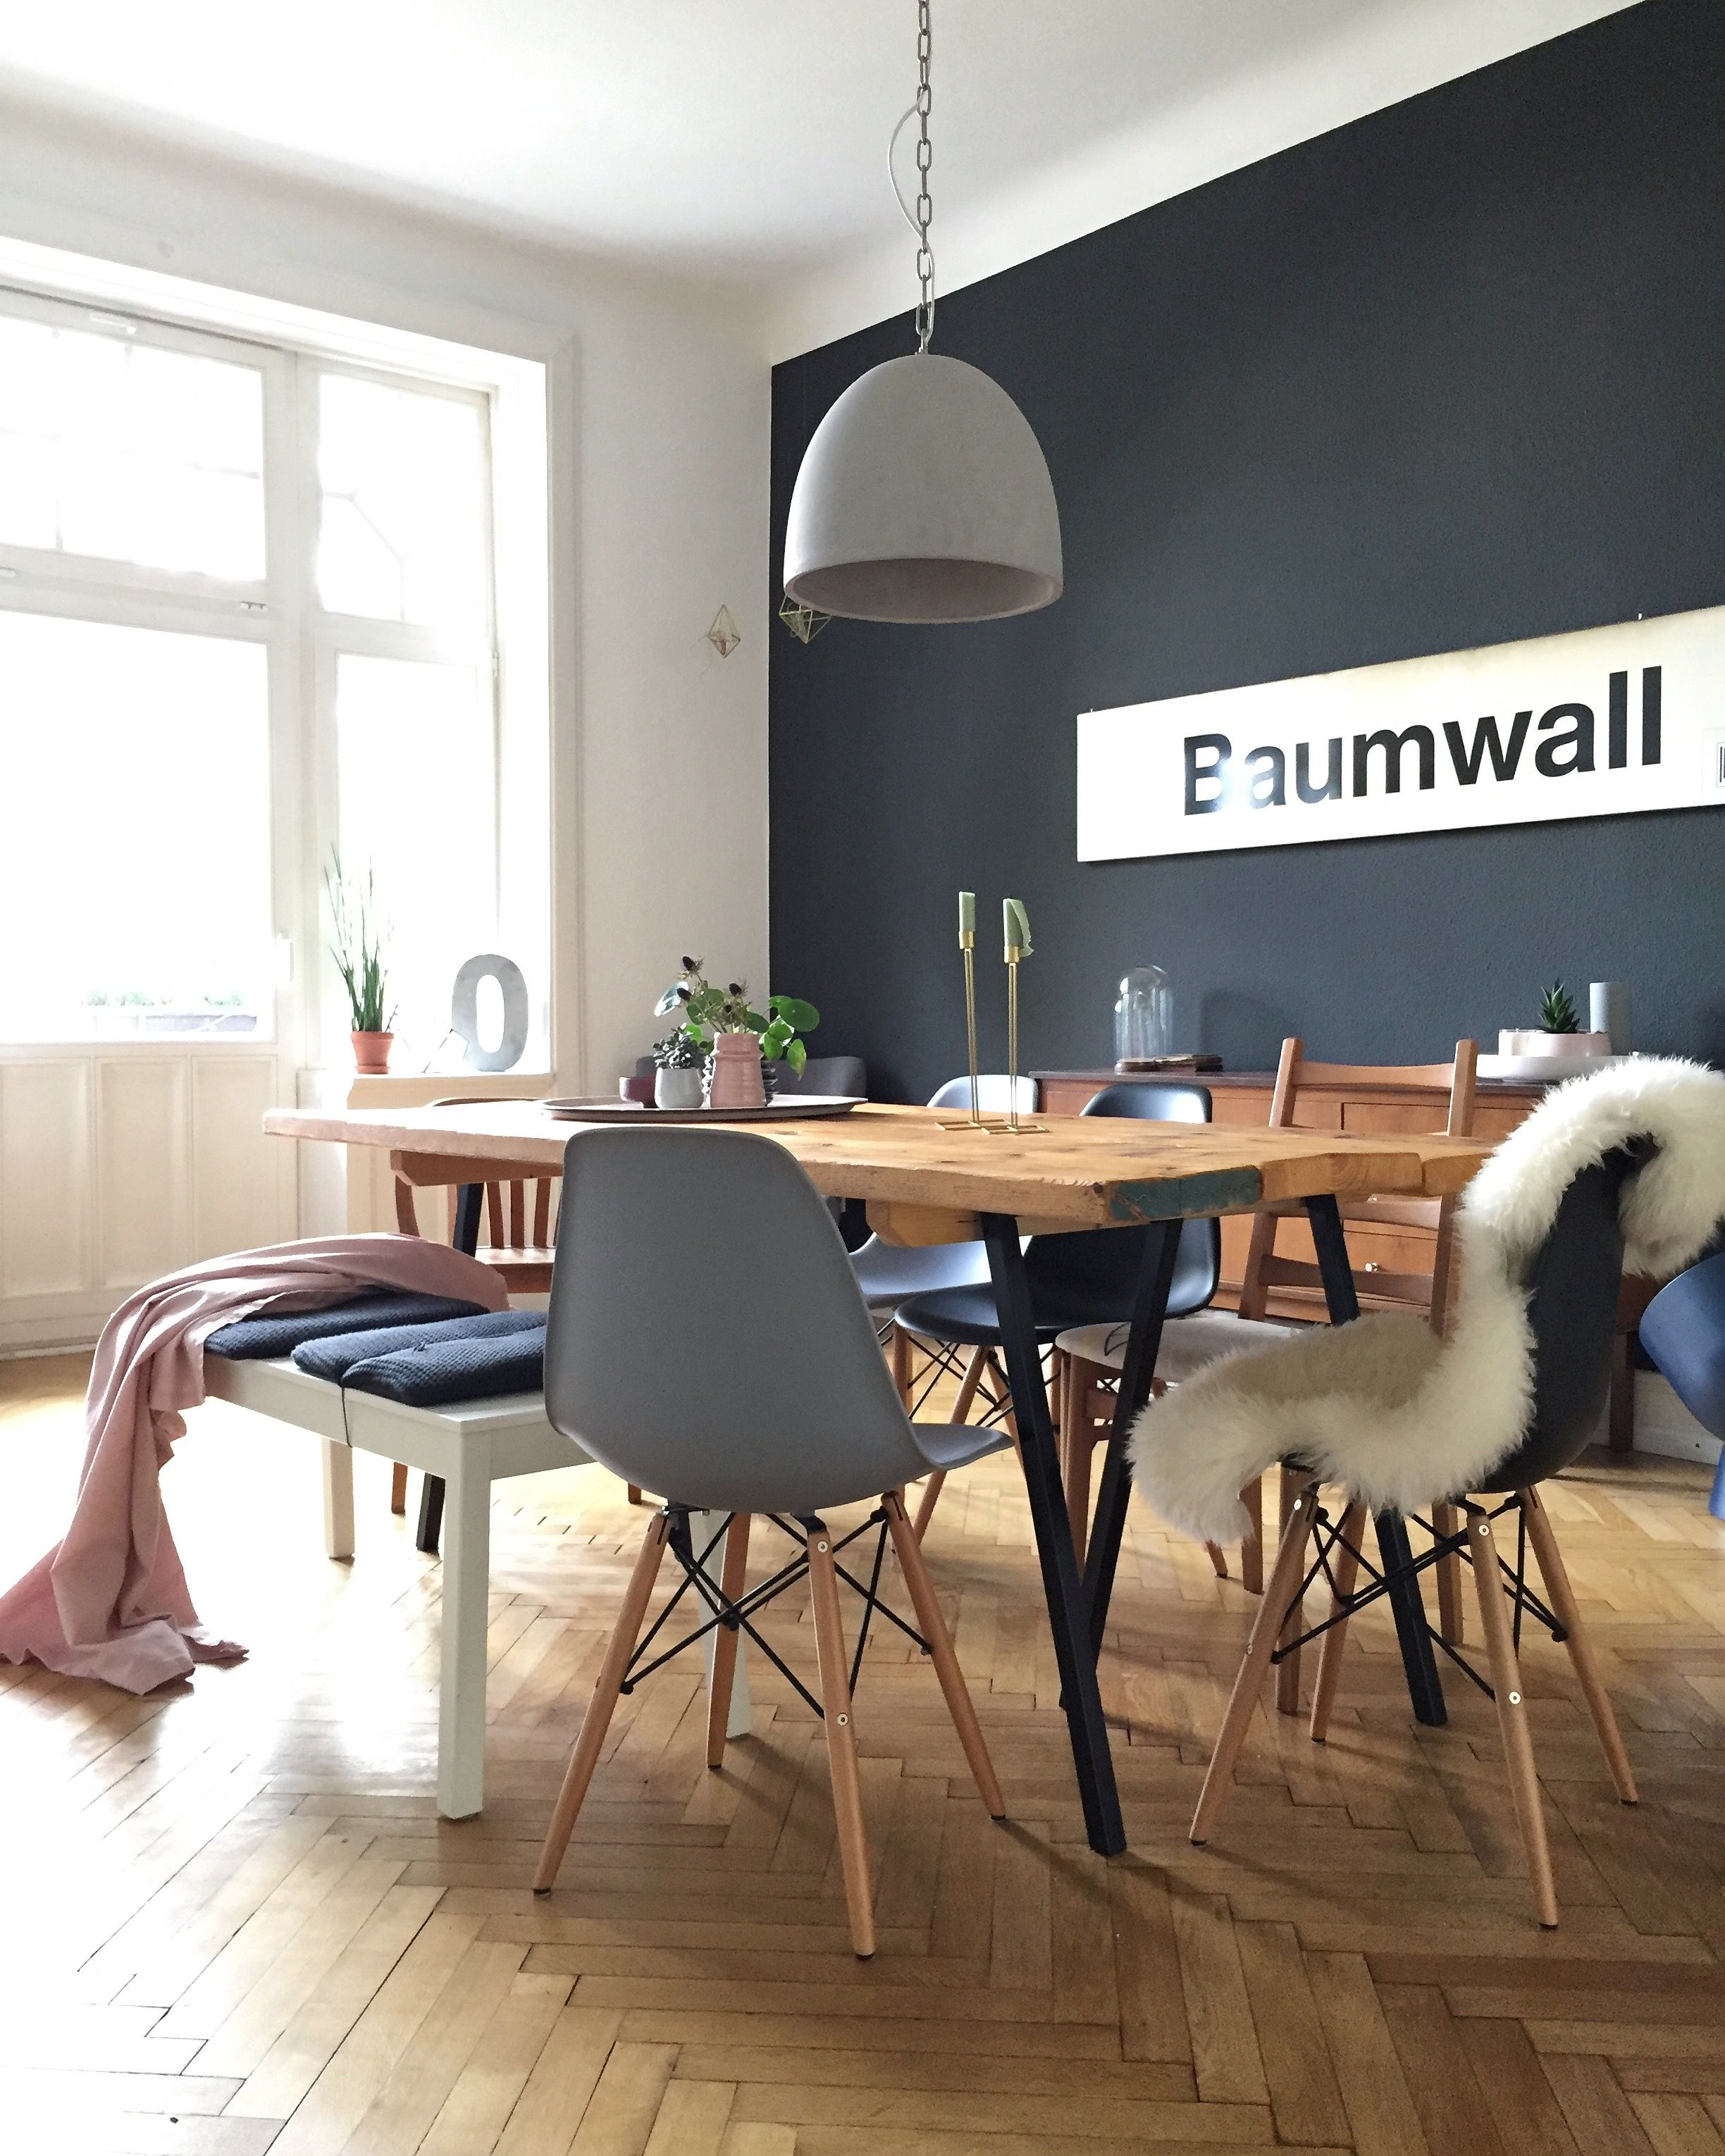 Diningroom Diy Diningtable Esstisch Esszimmer Blackwall